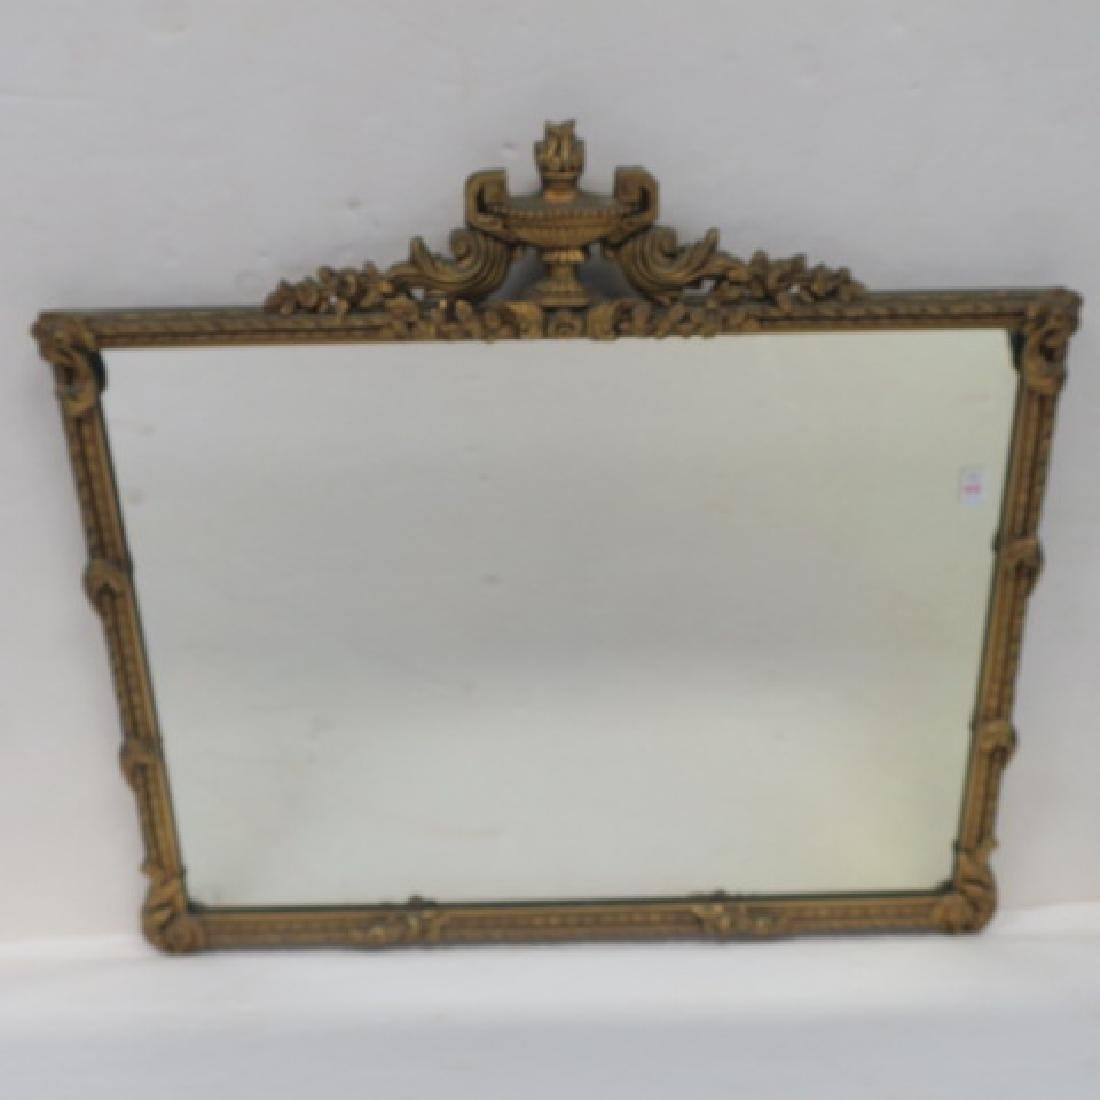 Carved Giltwood Rectangular Mirror with Urn & Flame: